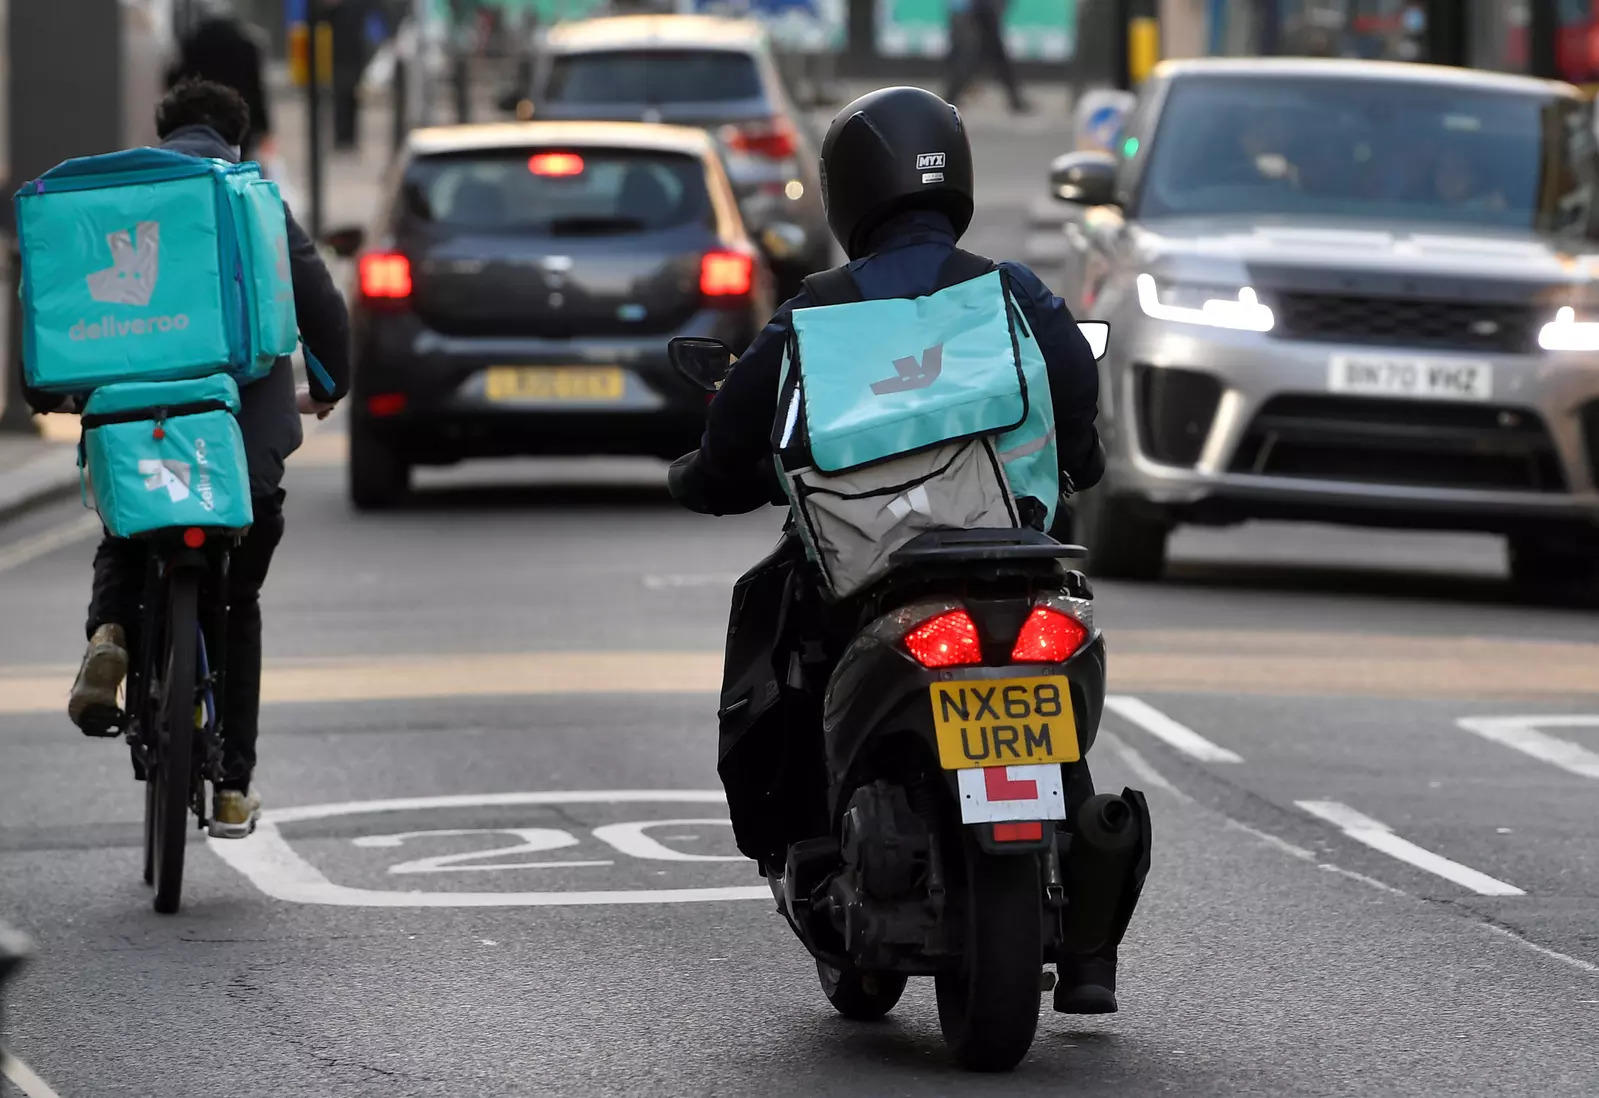 At the mid-point of the price range, Deliveroo's post-IPO enterprise value will be more than 6 times last year's revenue of 1.2 billion pounds. For fund managers still weighing its appeal, the biggest sustainability question is over Deliveroo's financial viability.